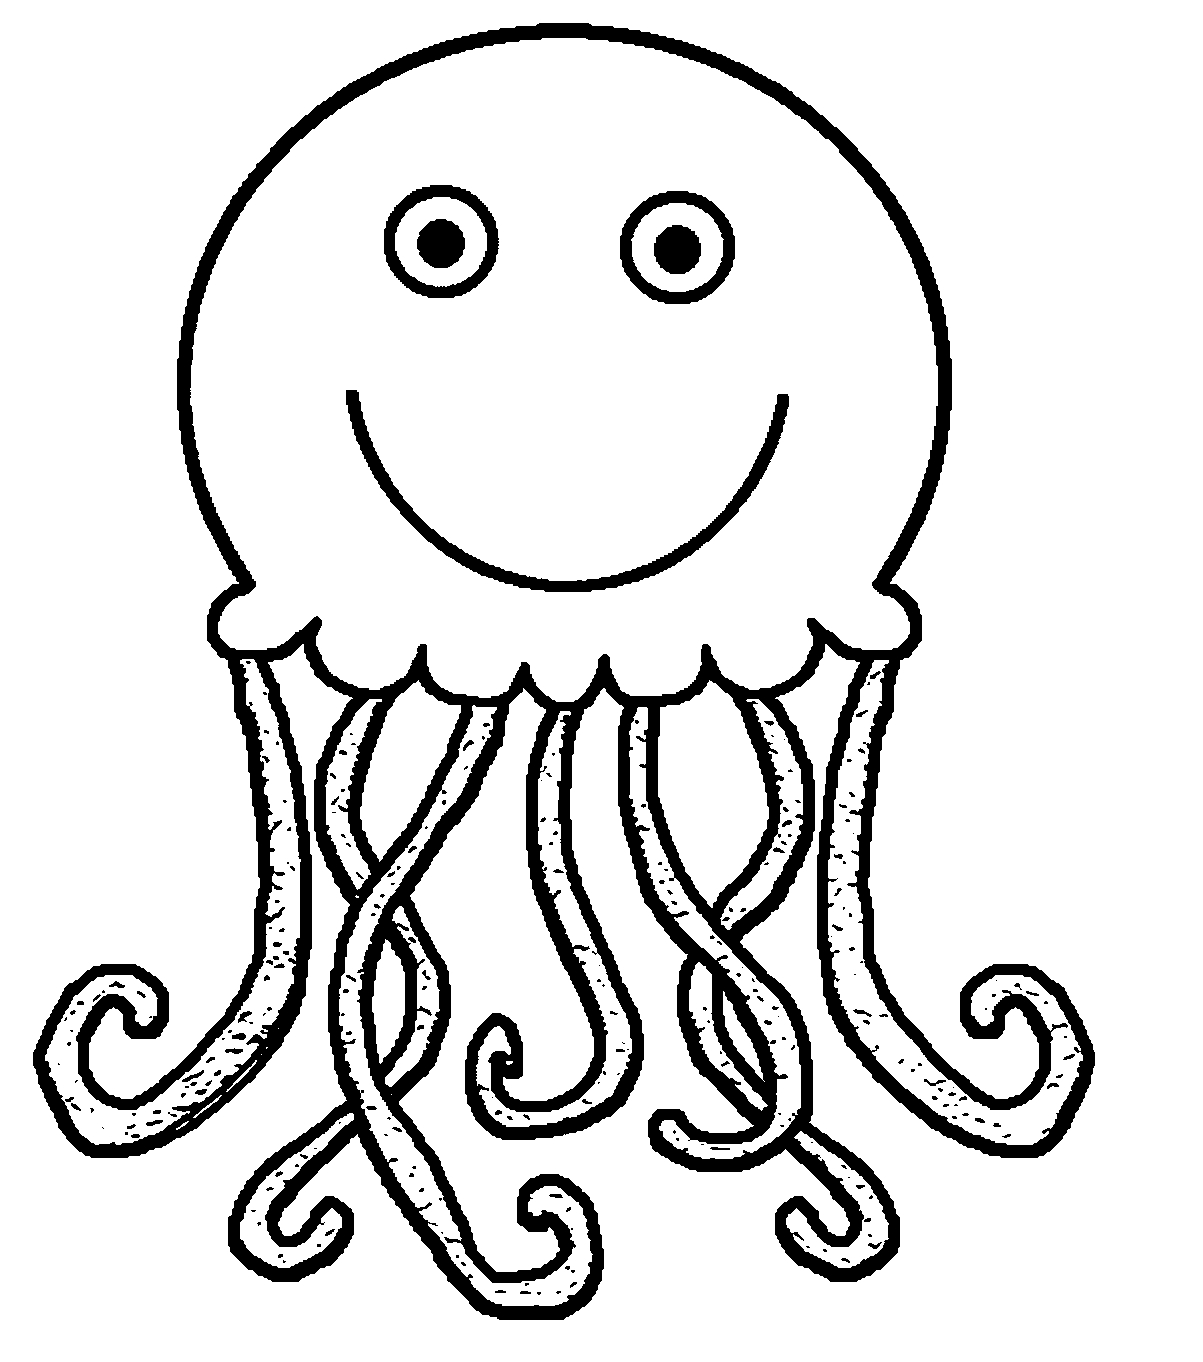 27 Snowflake Coloring Page Selection | FREE COLORING PAGES - Part 3 for Clipart Jellyfish Black And White  55jwn